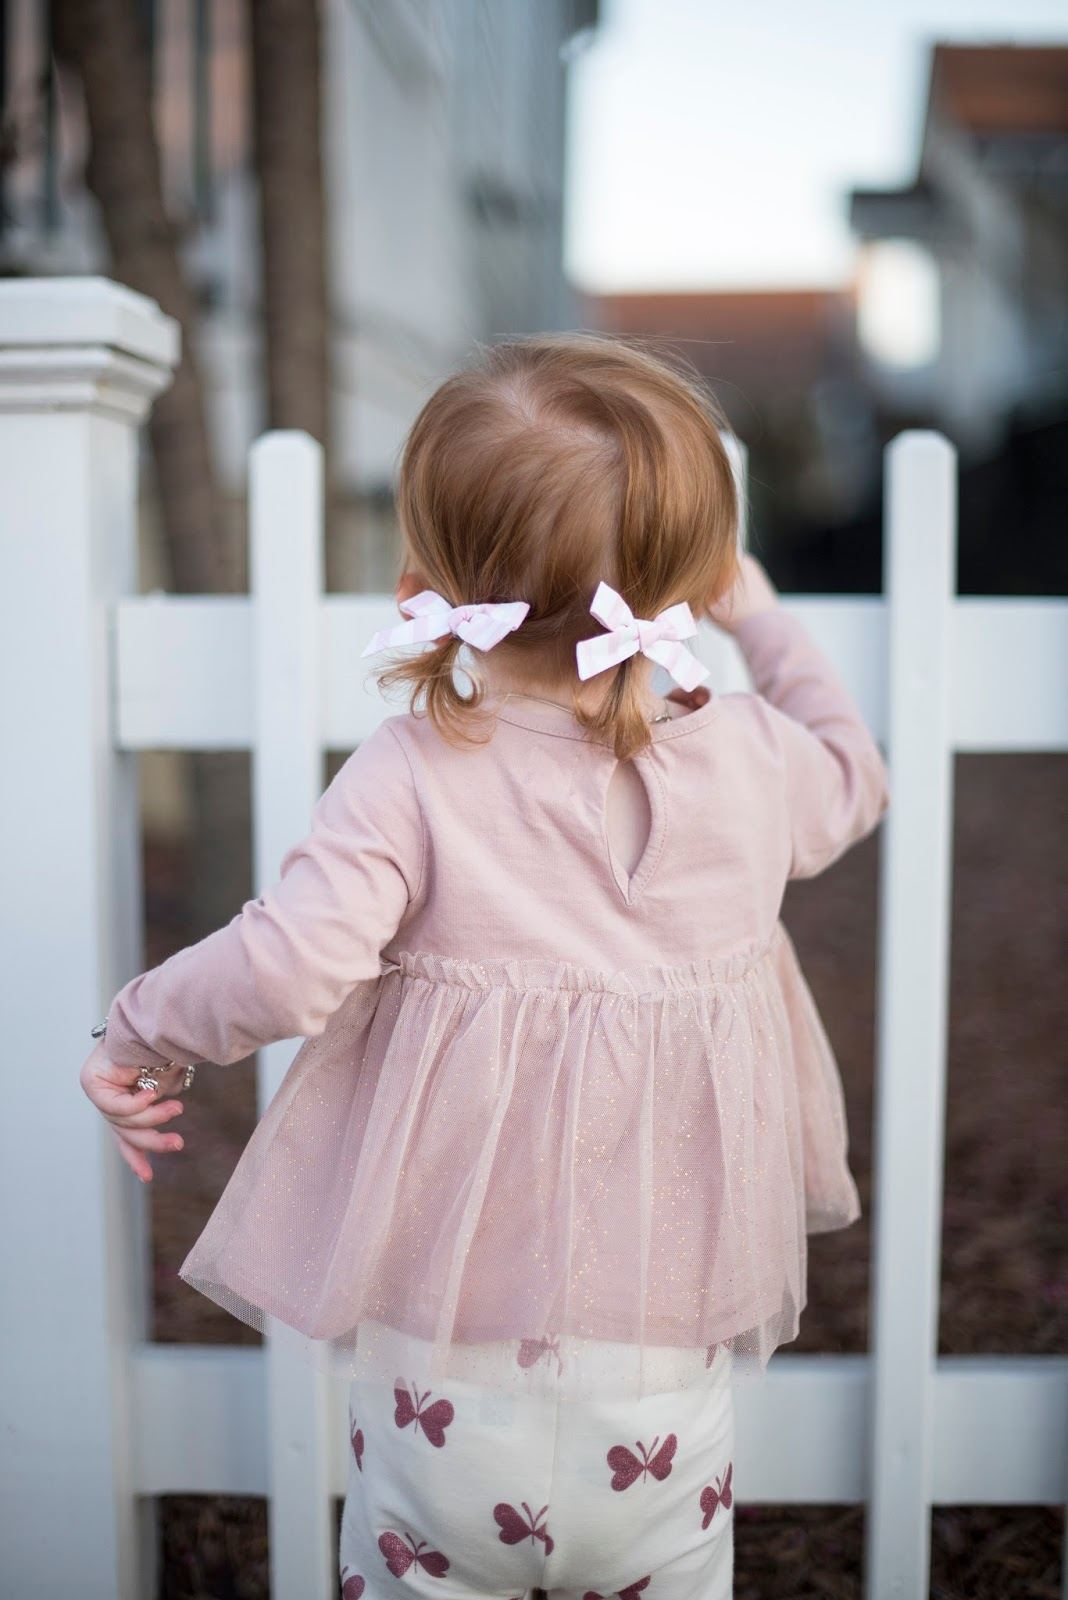 First Pigtails - Something Delightful Blog